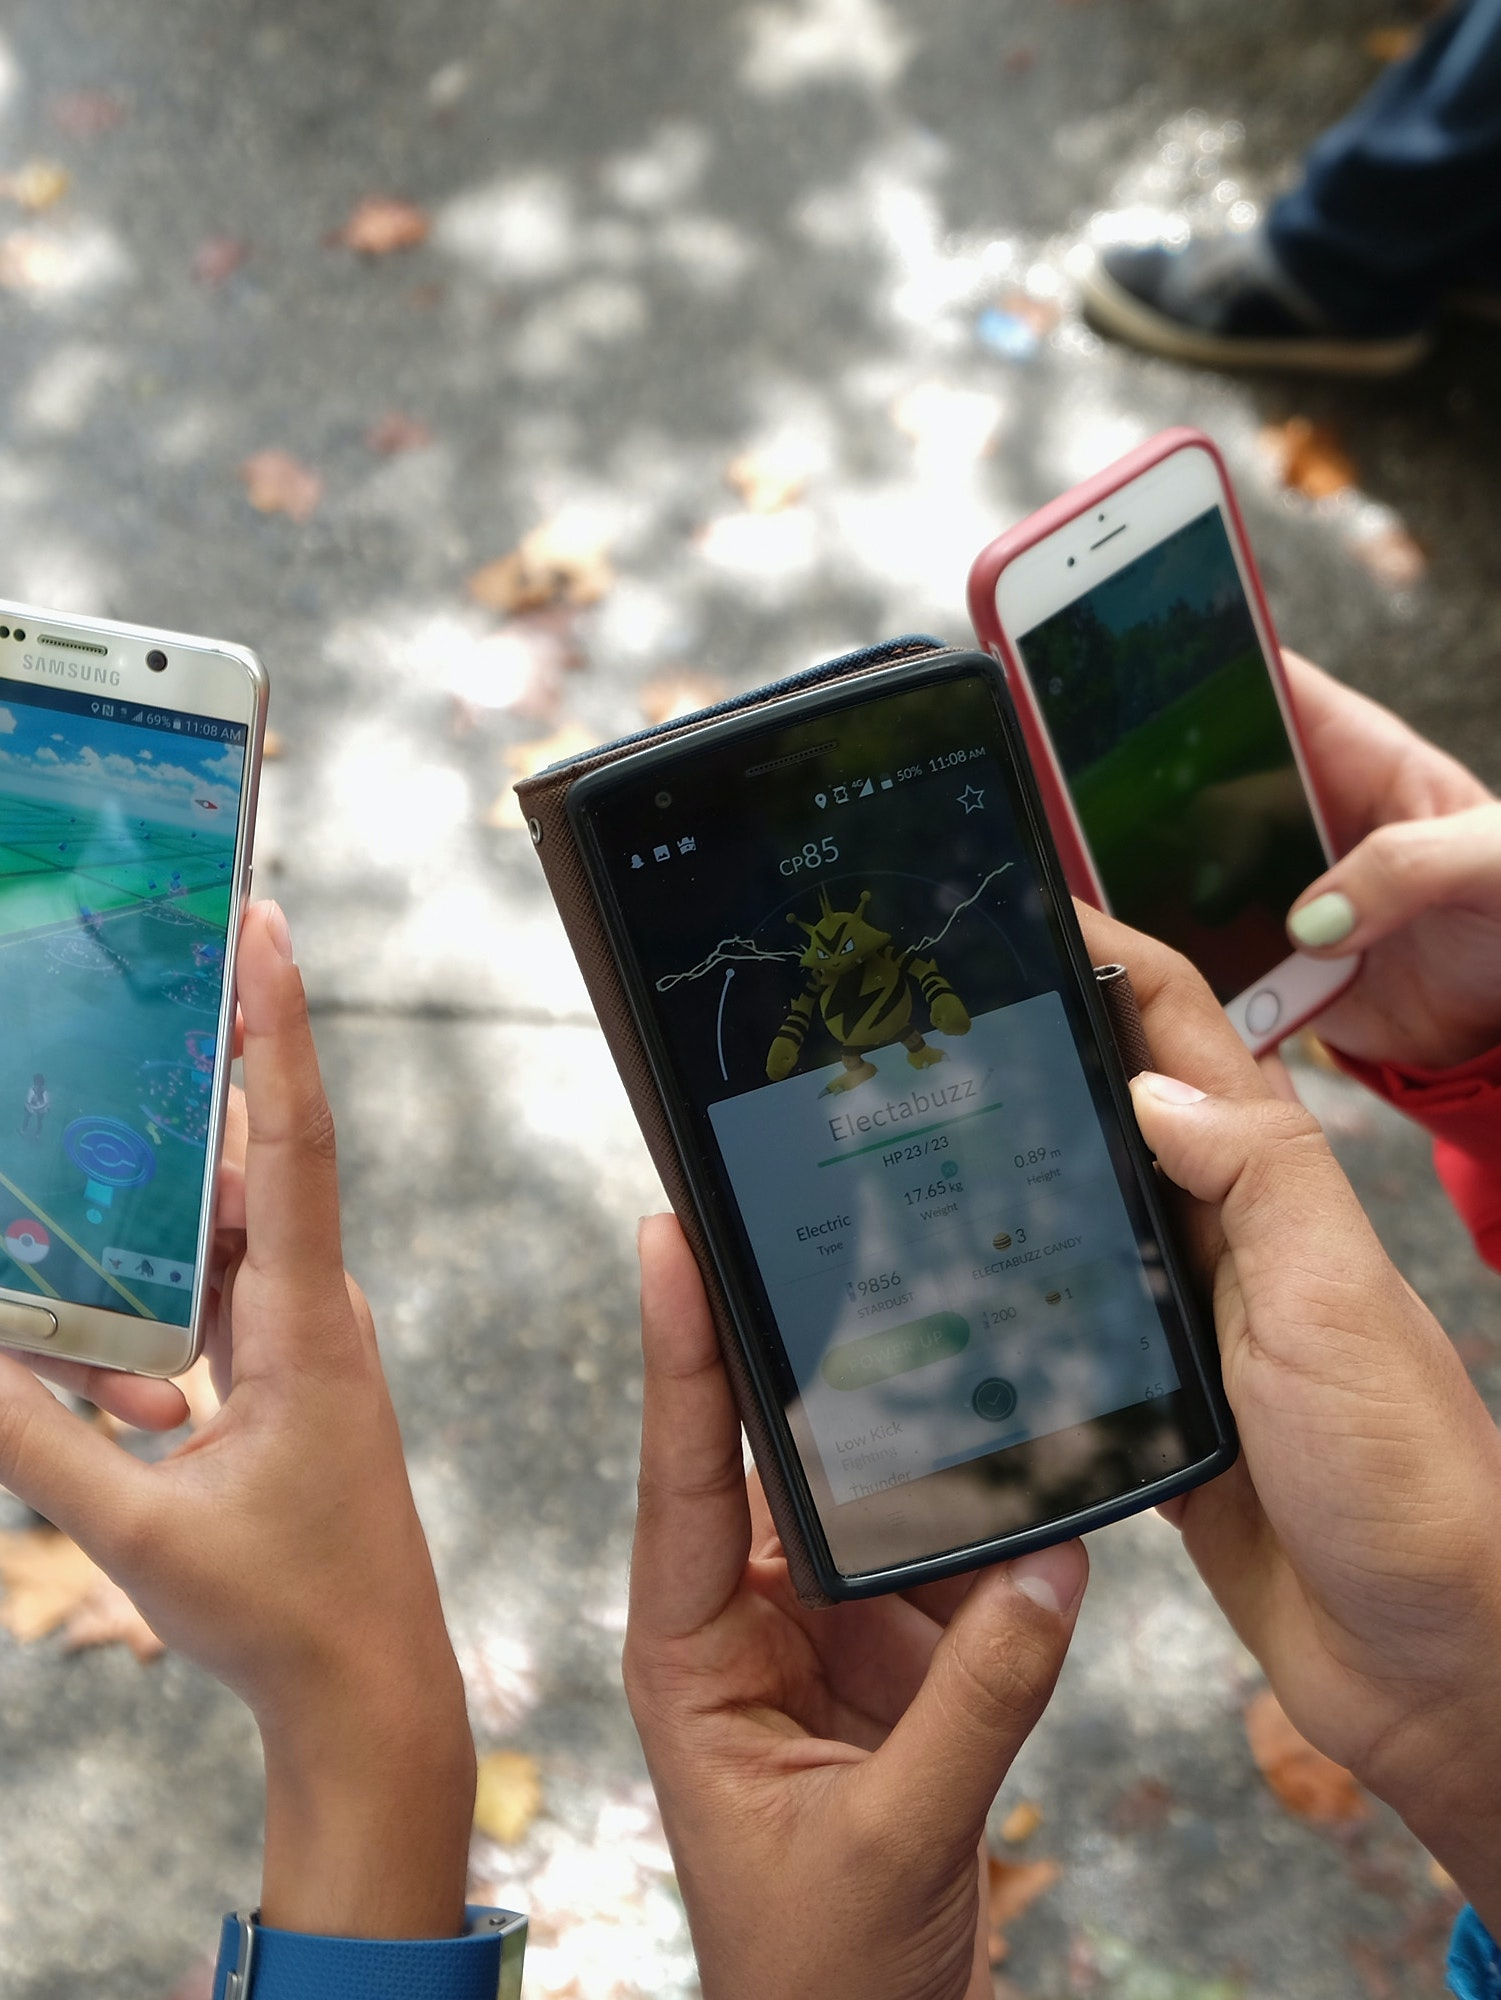 NEW YORK, NY - JULY 29:  Children play Pokemon Go in Central Park as Pokemon Go craze hits New York City on July 29, 2016 in New York City.  (Photo by Michael Loccisano/Getty Images)